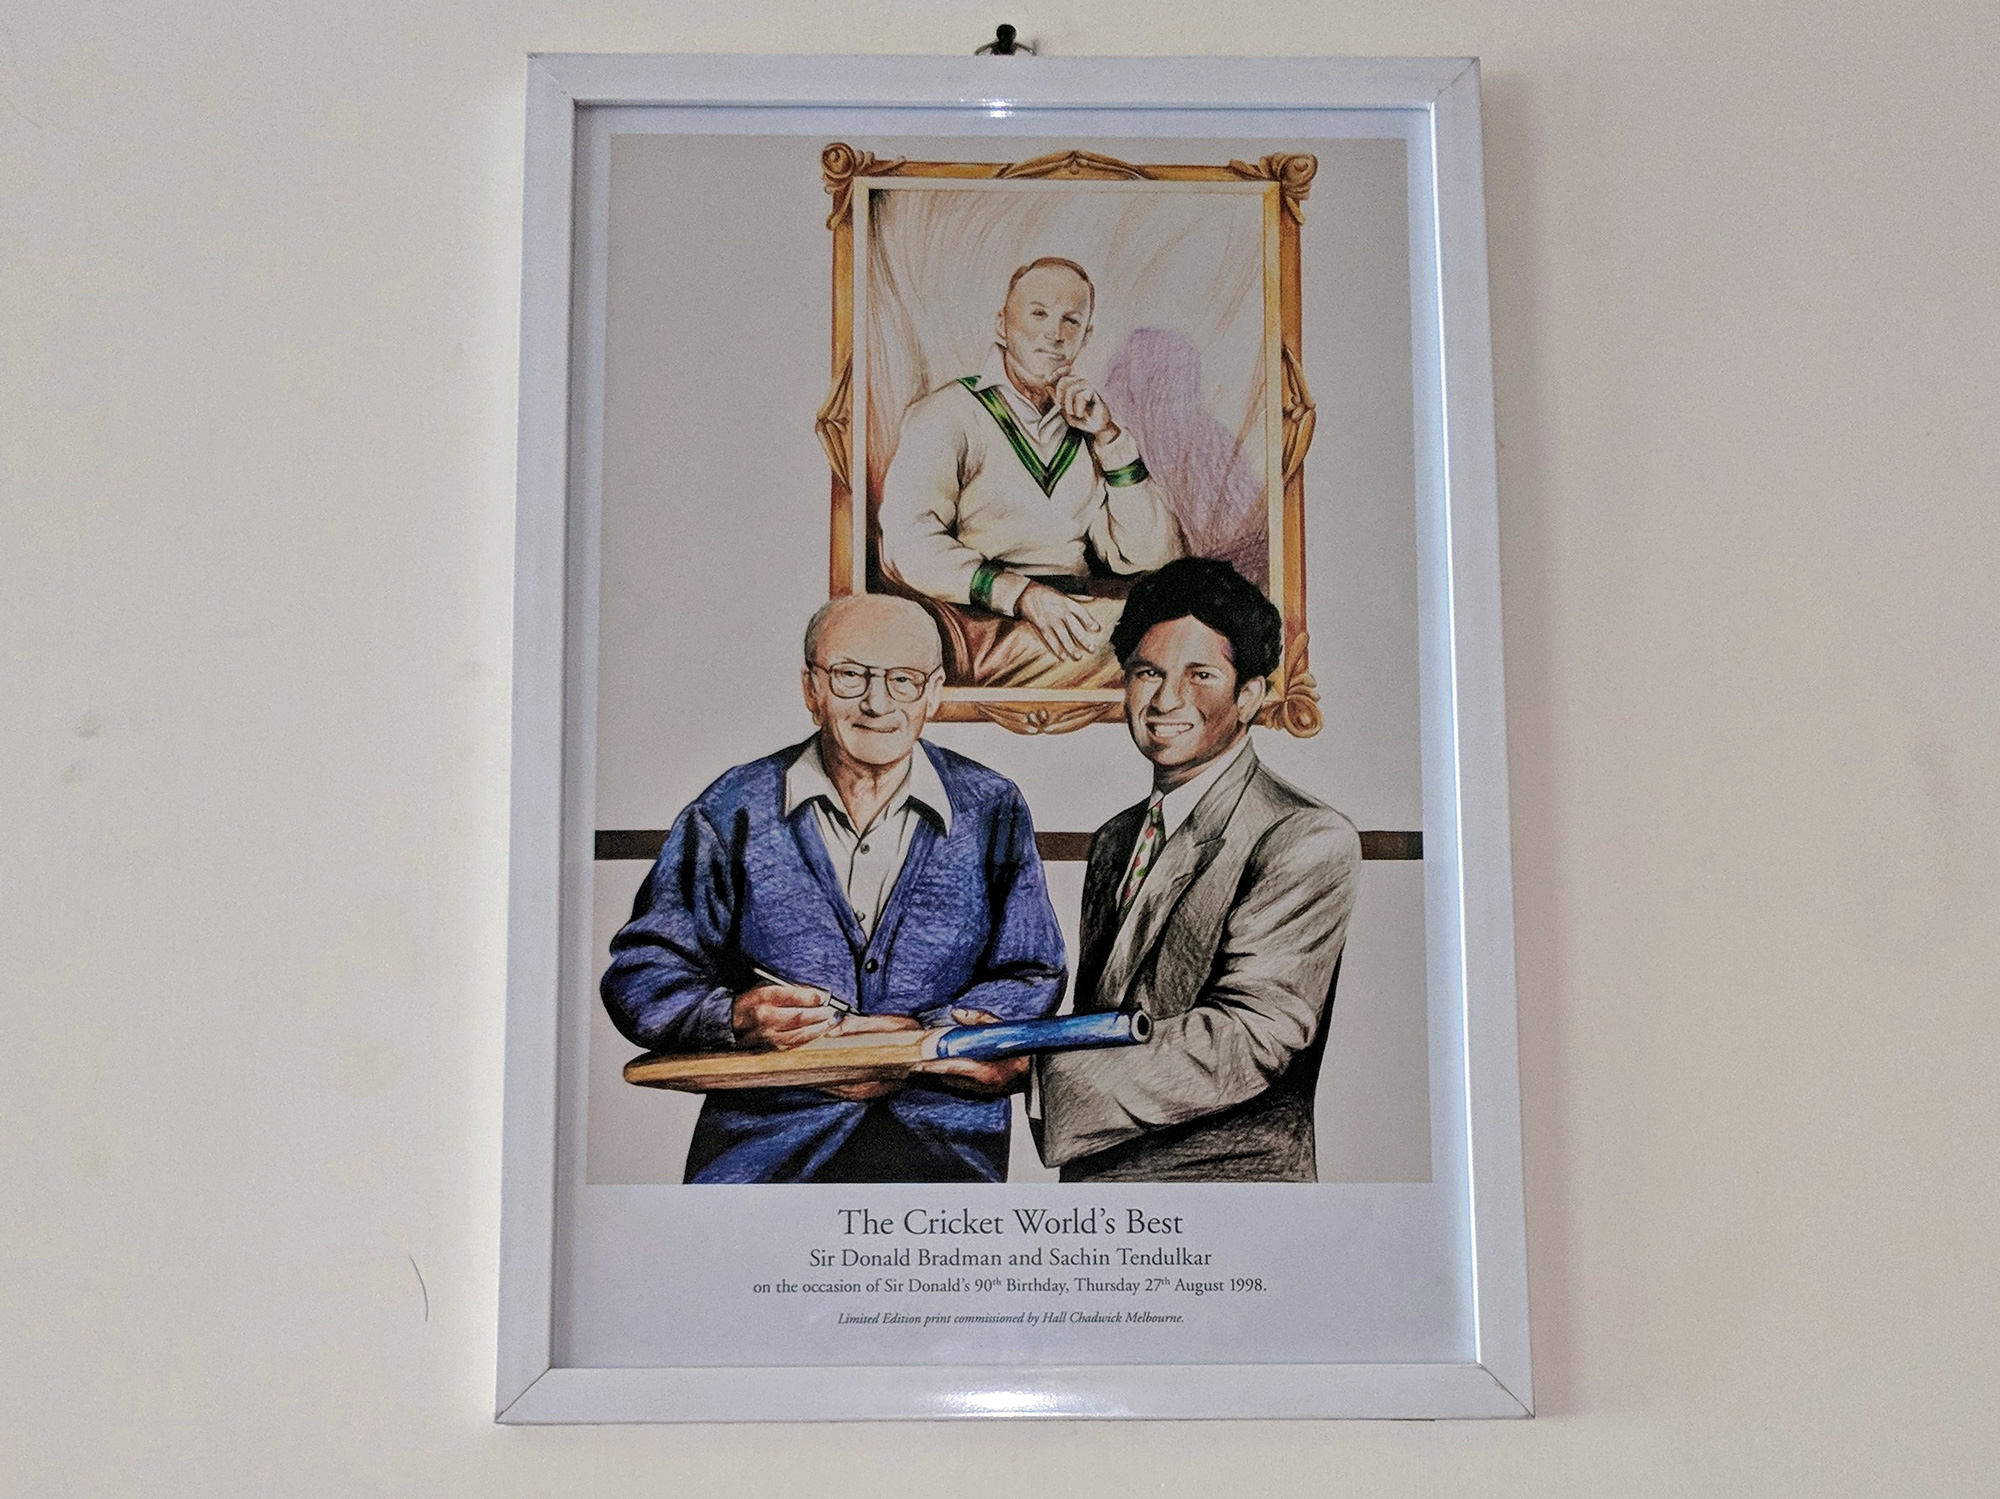 Sir Donald Bradman and Sachin Tendulkar